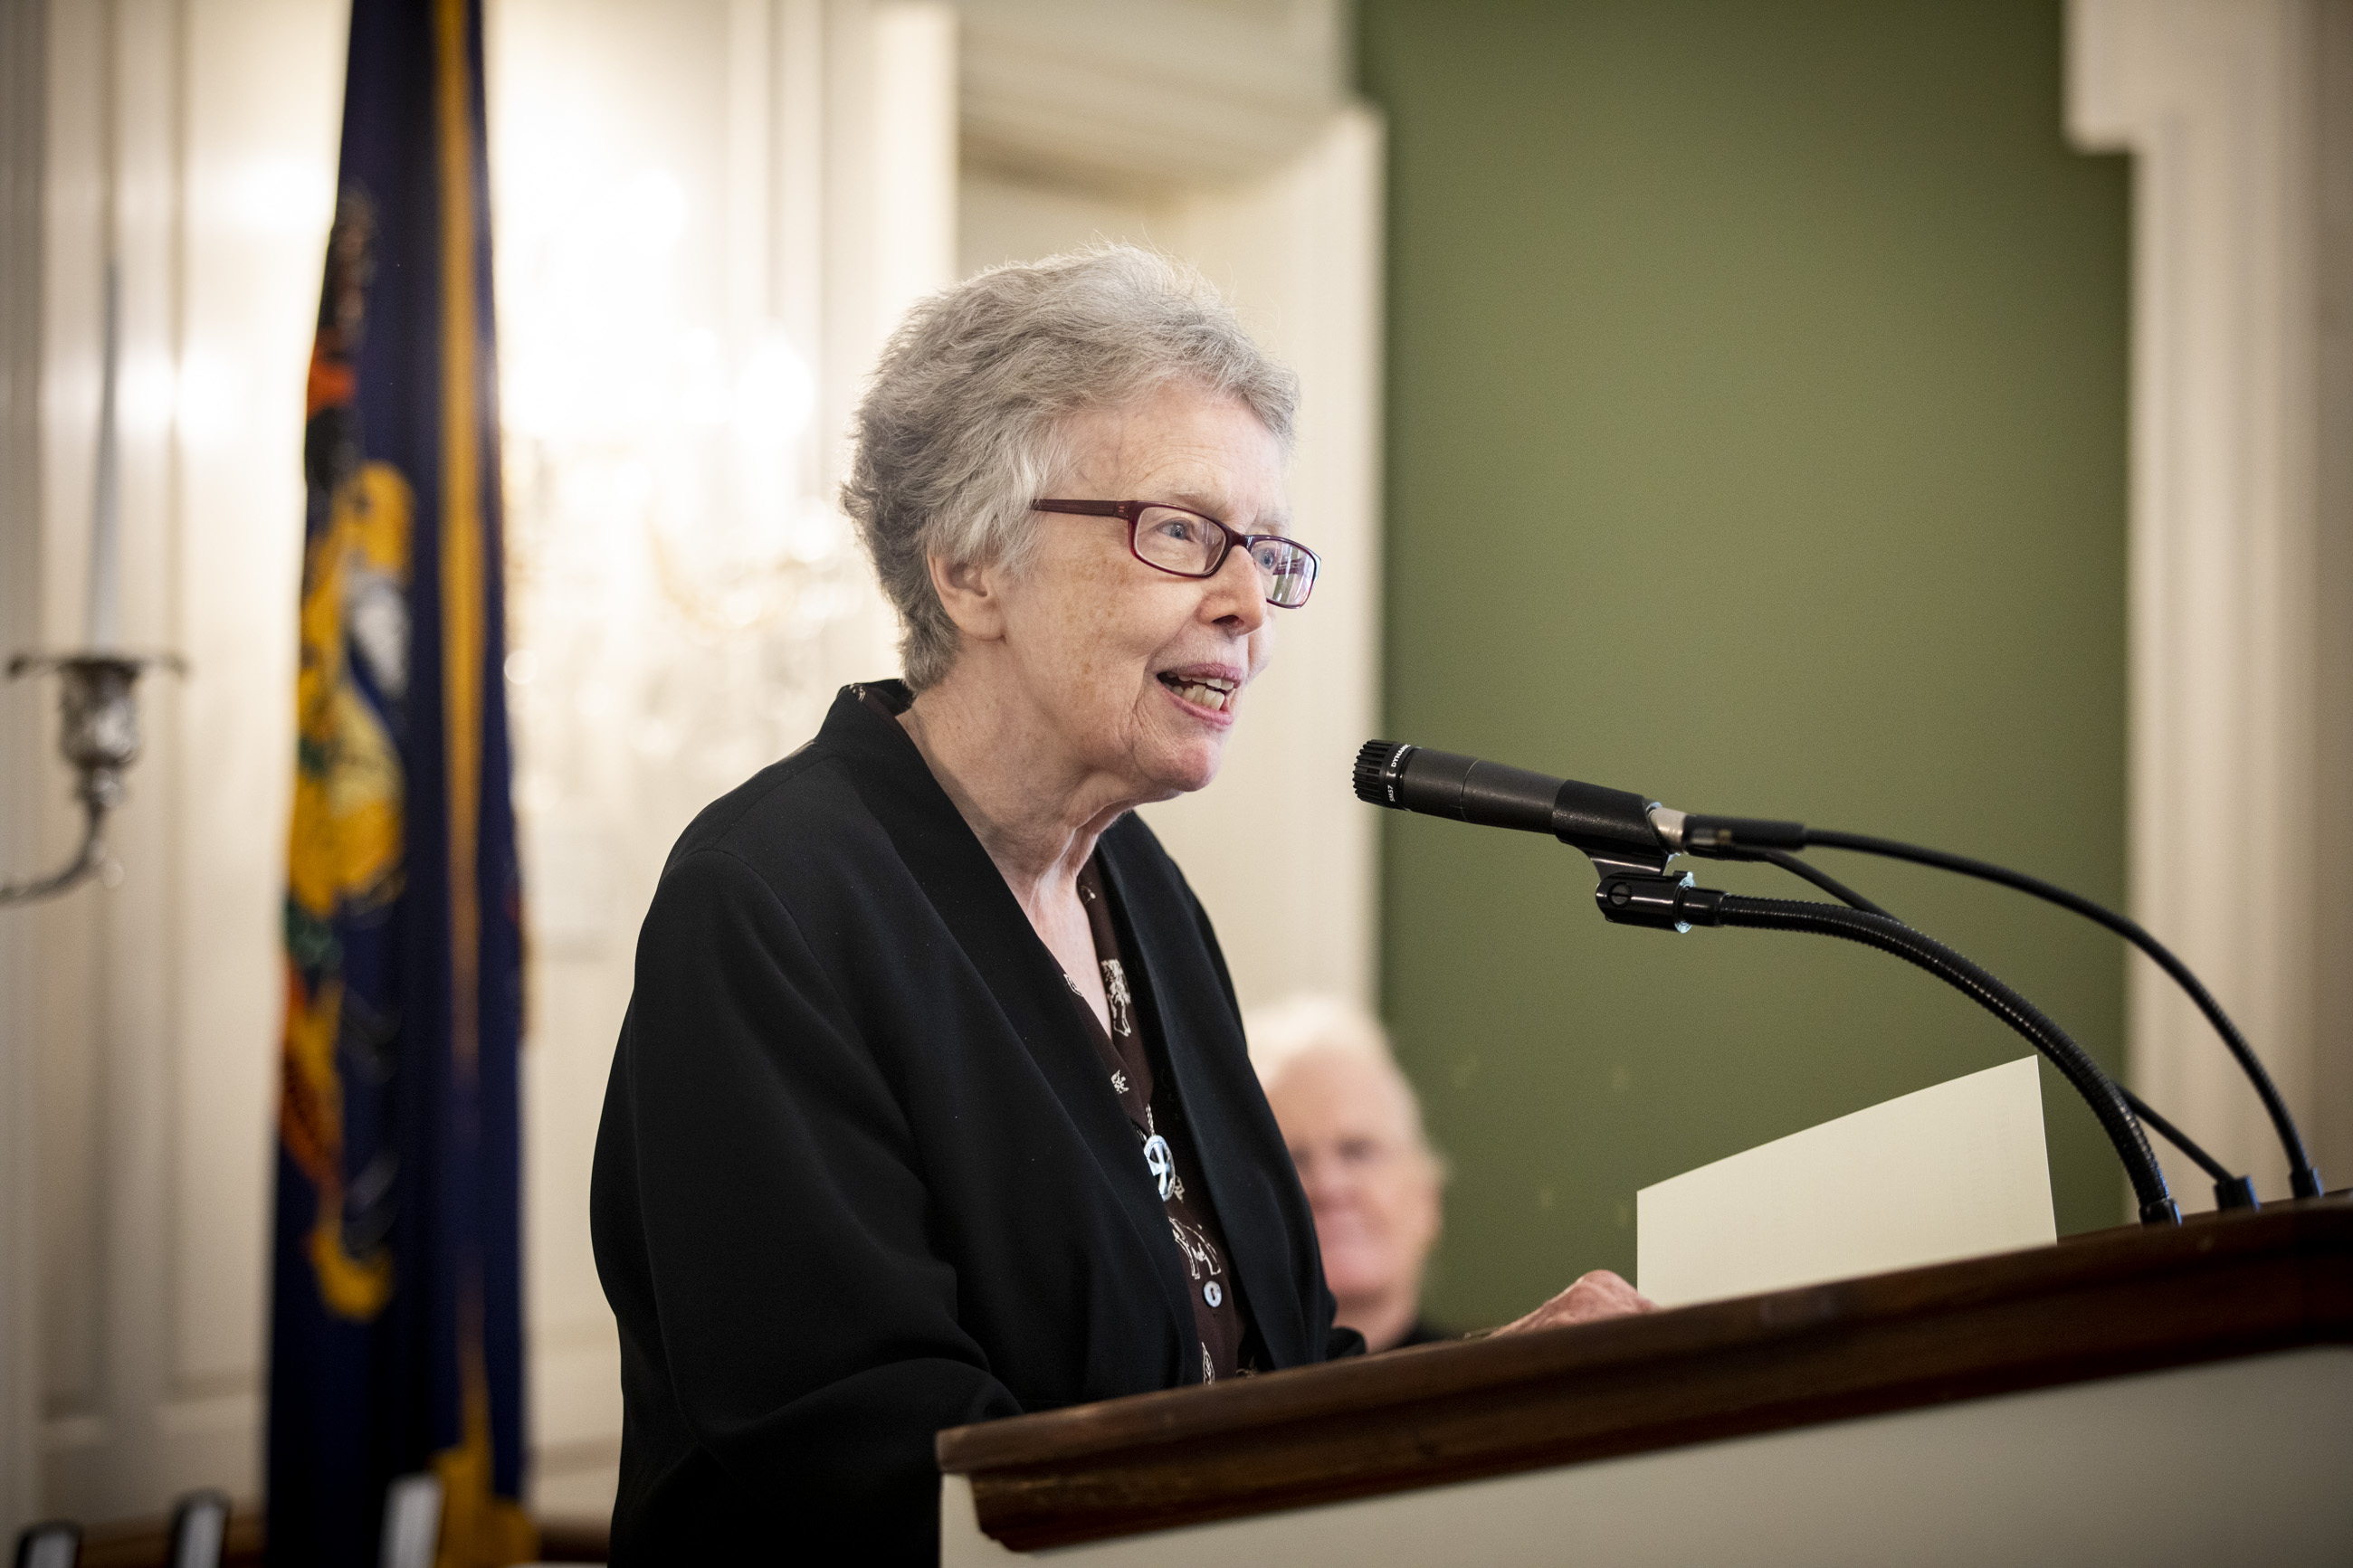 Image of Sr. Rosemary speaking at Distinguished Daughters of PA Award Ceremony